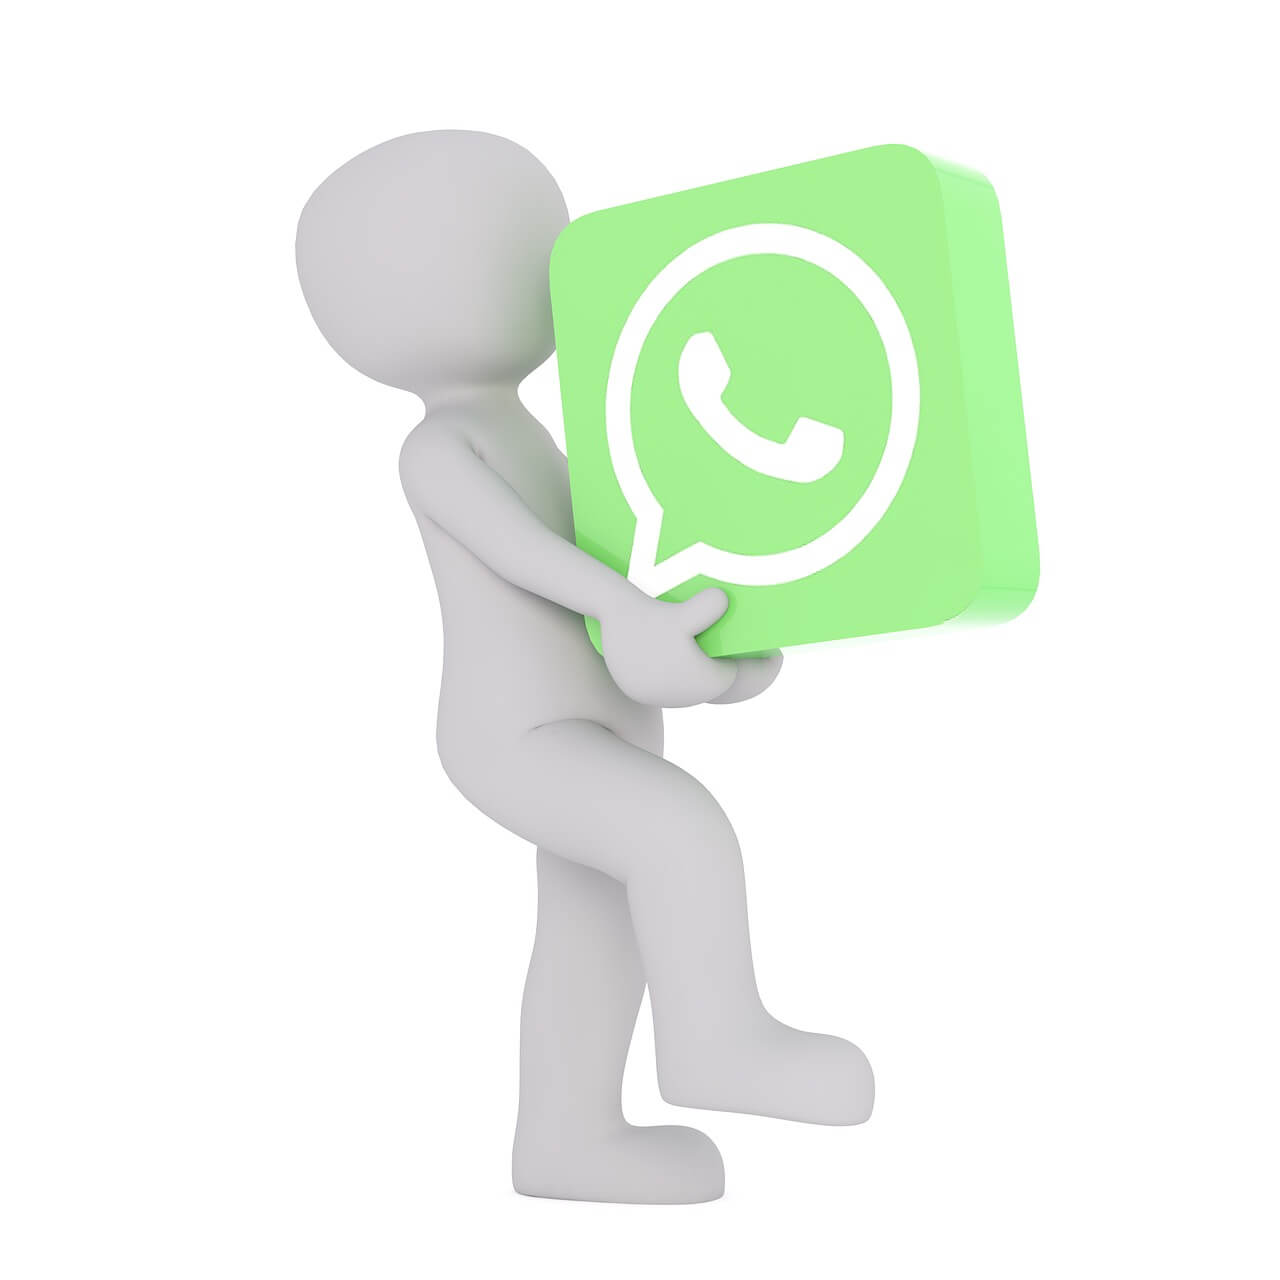 gbwhatsapp 6.55 apk download